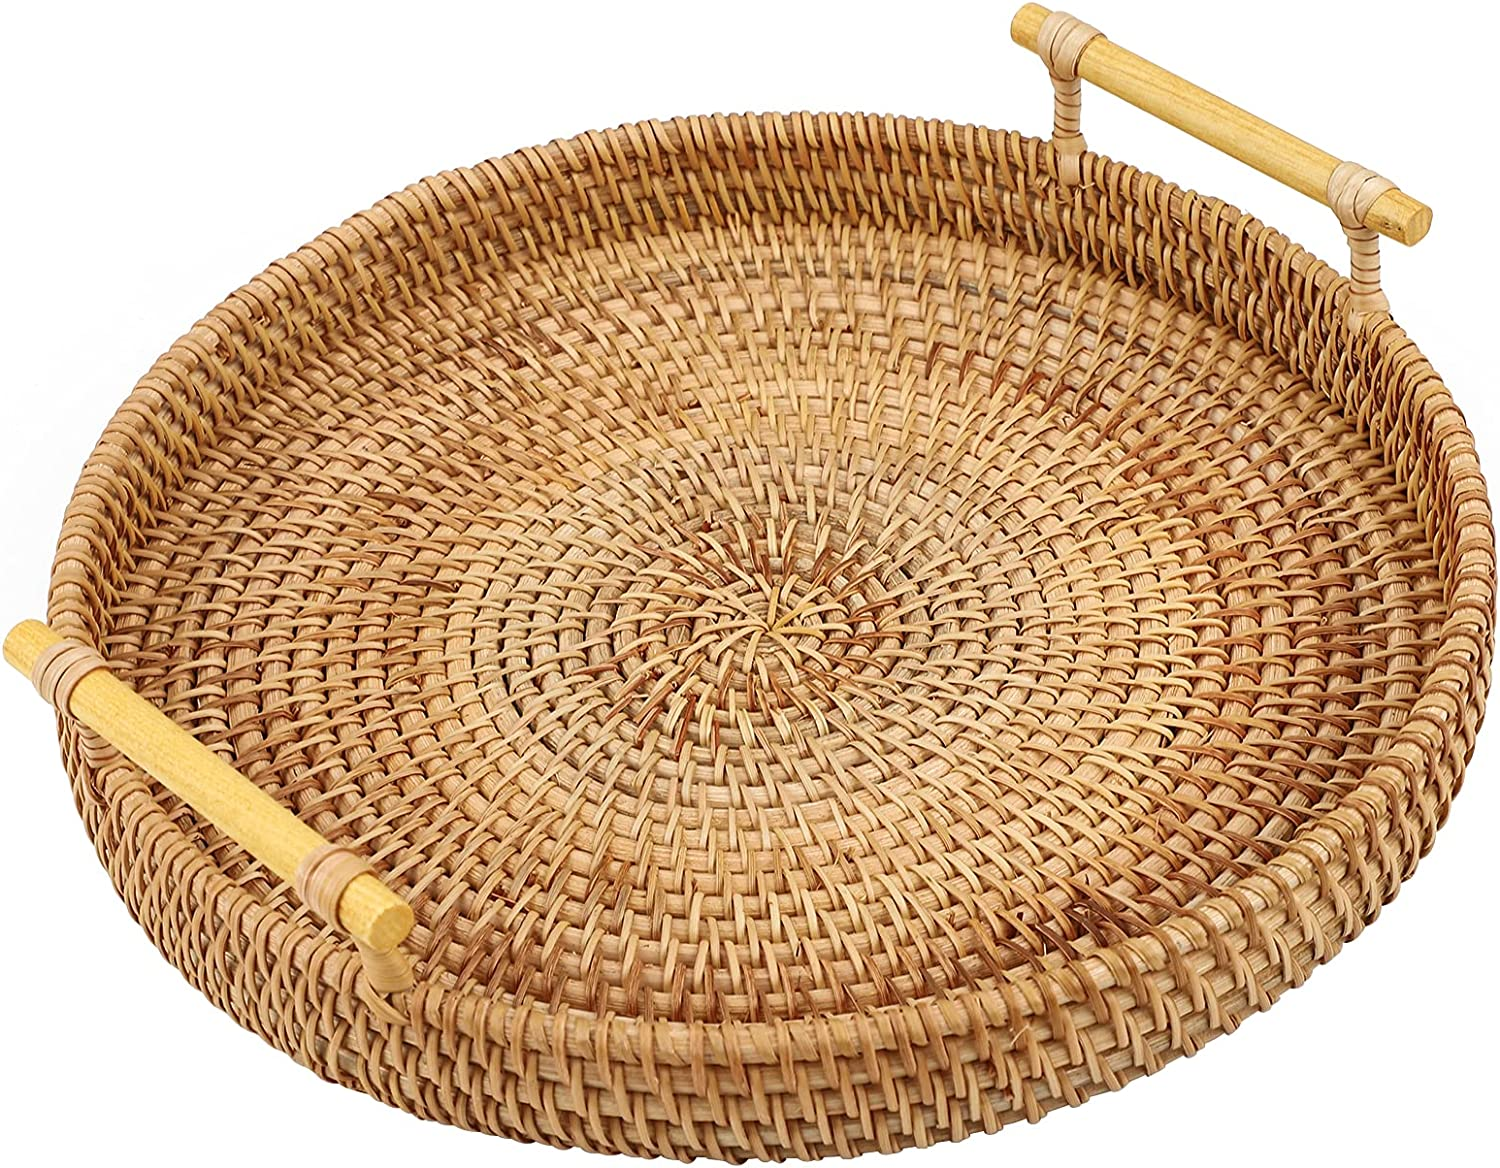 Gukasxi 11 inch Rattan Serving Tray with Handles, Rattan Round Basket Round Woven Organizer Basket Food Serving Baskets Tray Wicker Home Decorative Tray for Storage Bread Fruit Food Breakfast Snacks